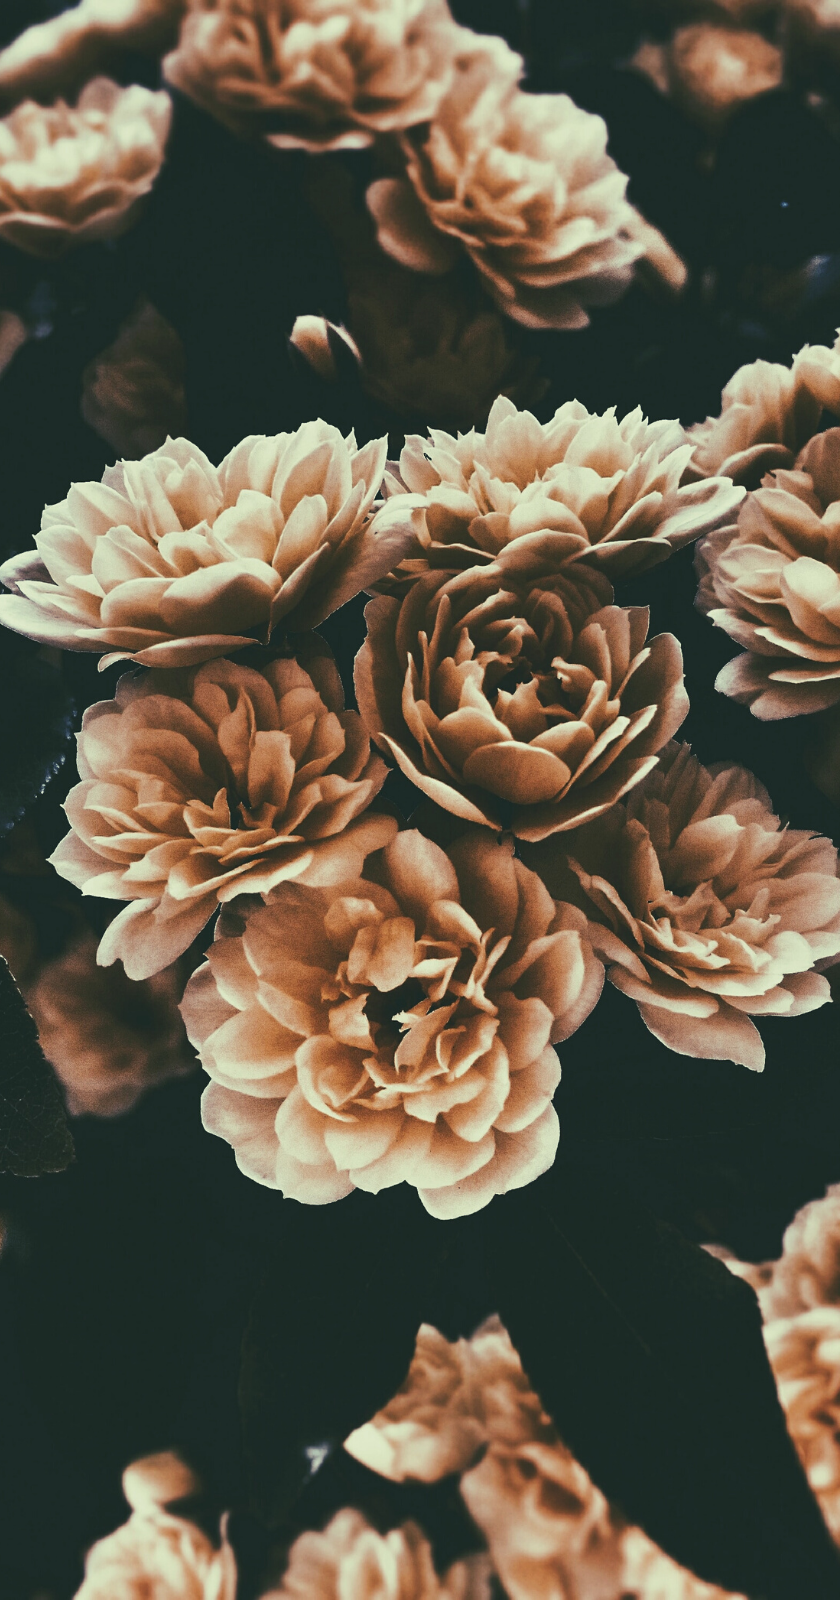 Wallpapers For Iphone In 2020 Floral Tumblr